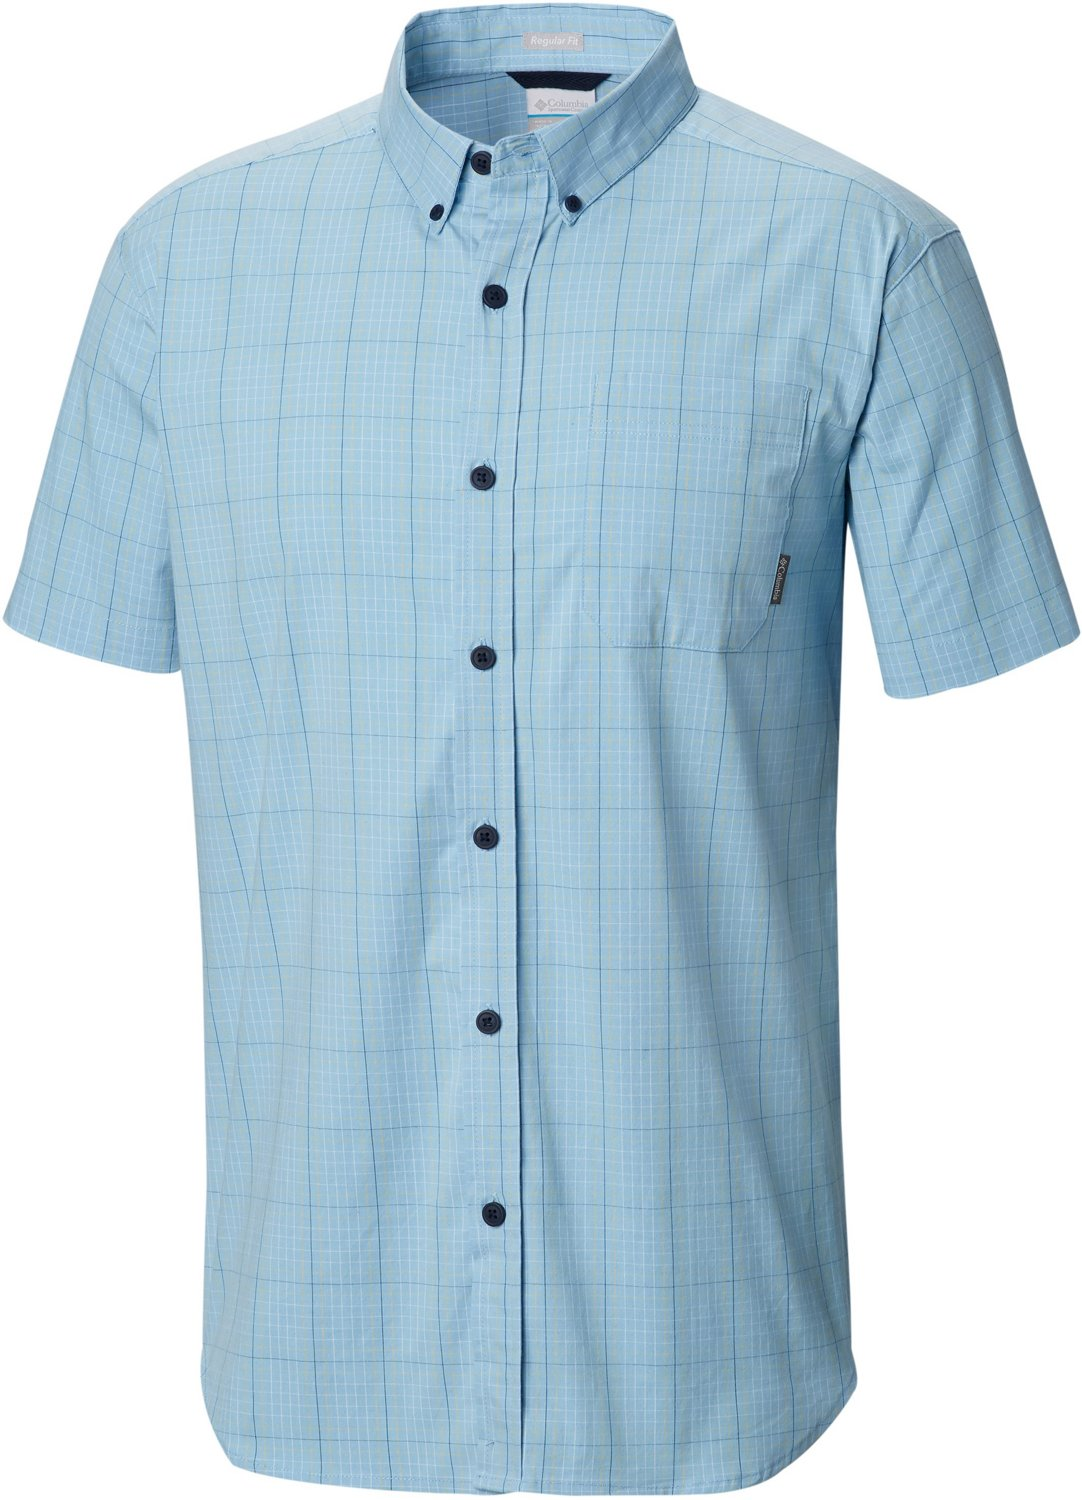 008c2e34981 Columbia Sportswear Men's Rapid Rivers Button-Down Shirt | Academy